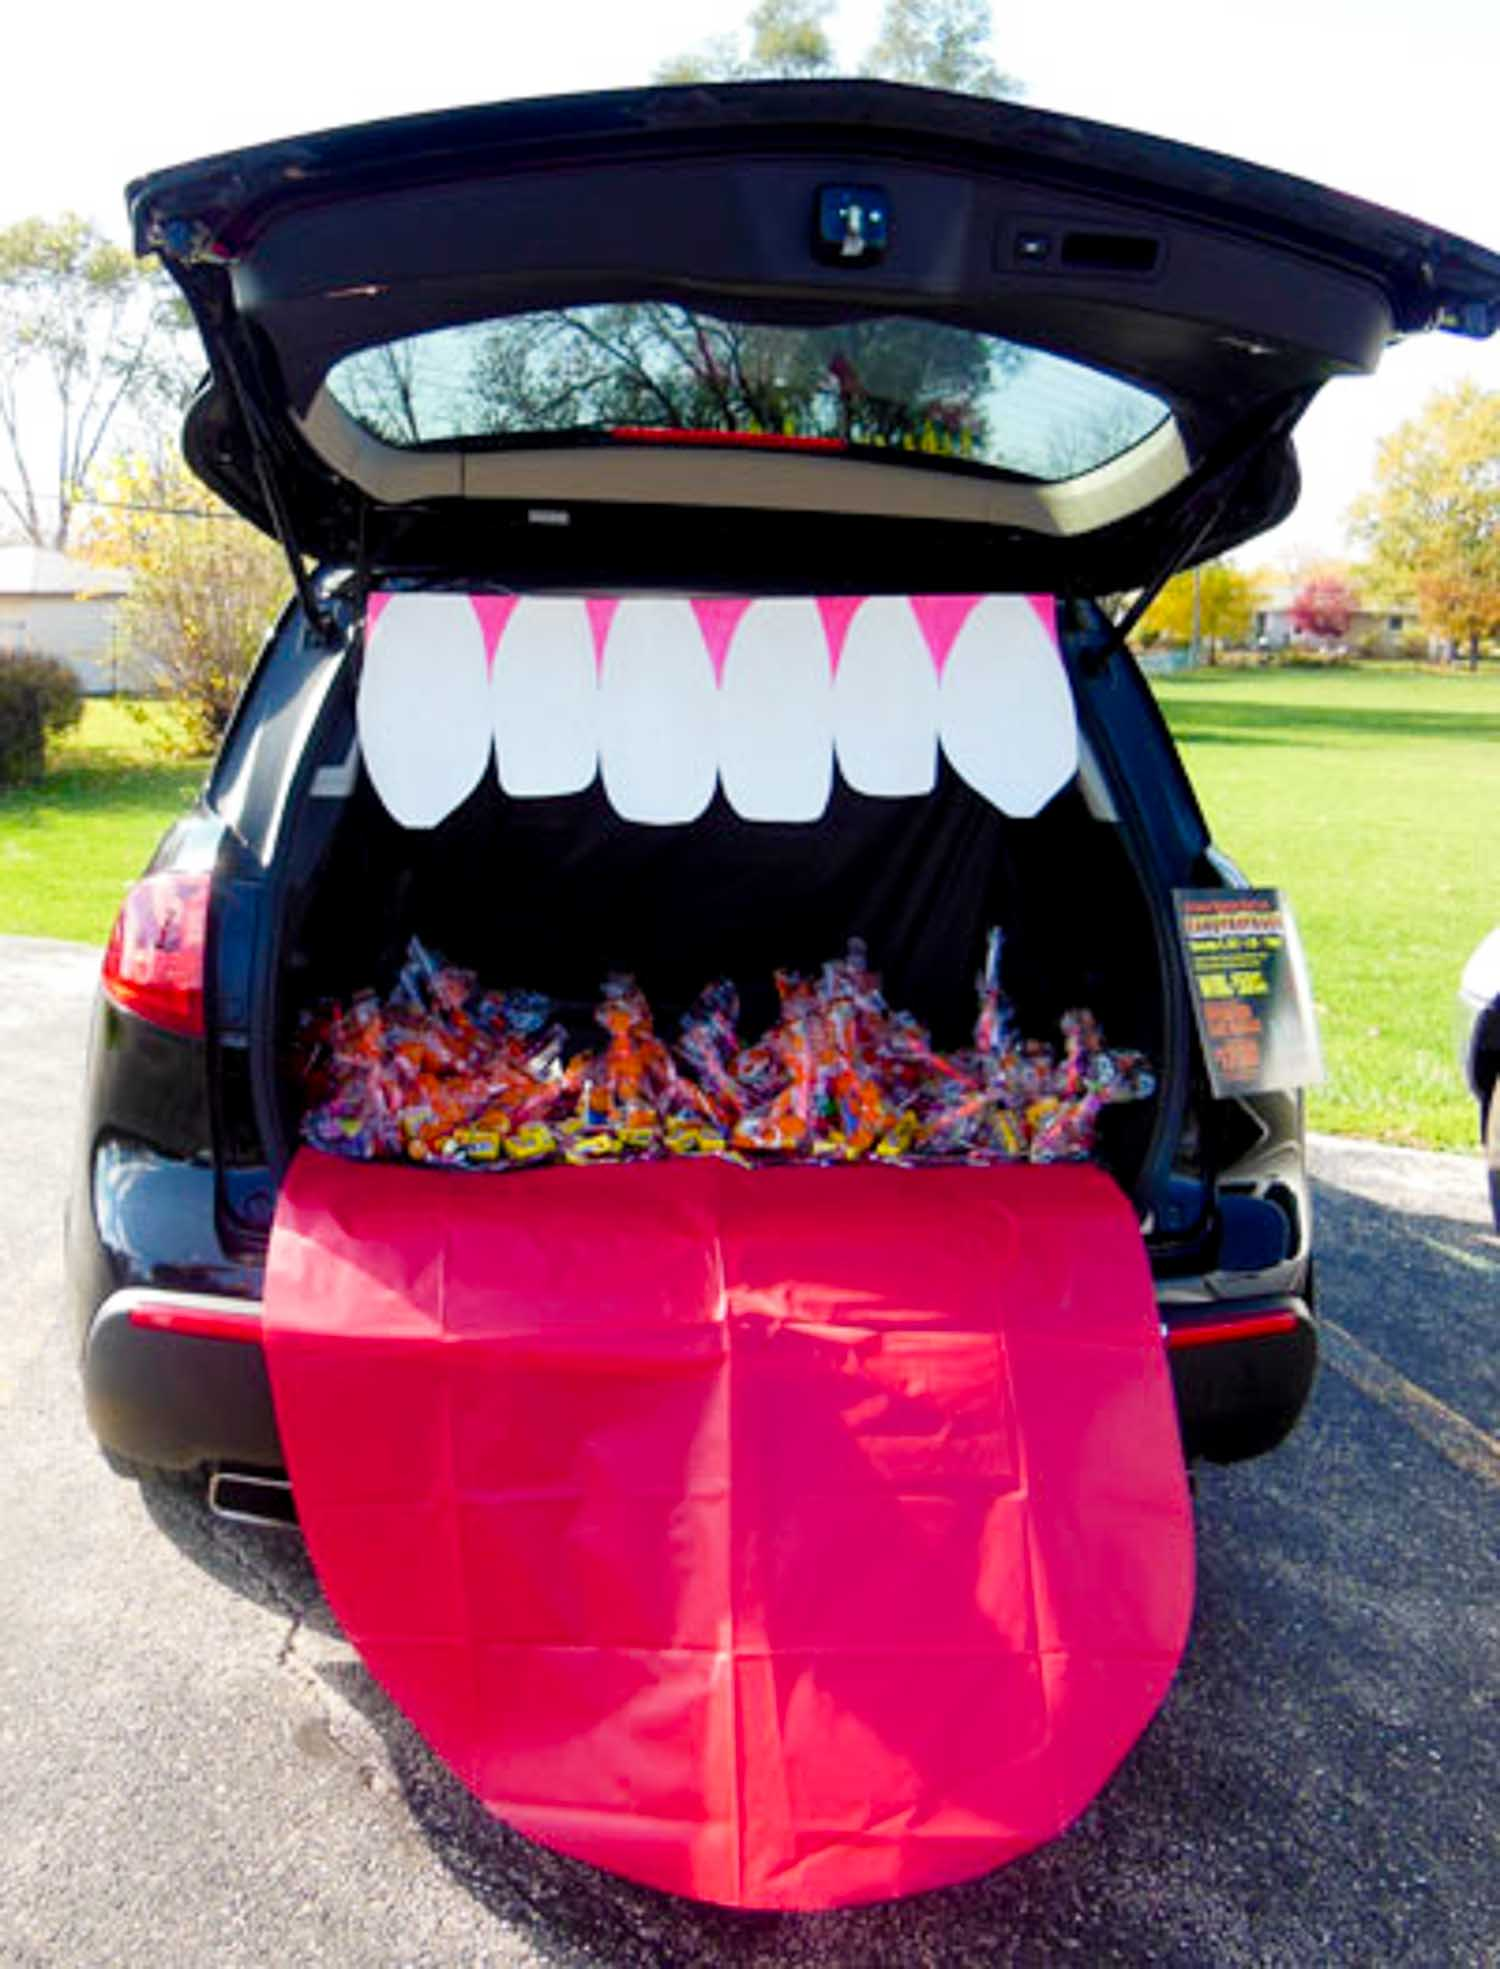 A large mouth decor in the back of a trunk with candy bags inside of it.